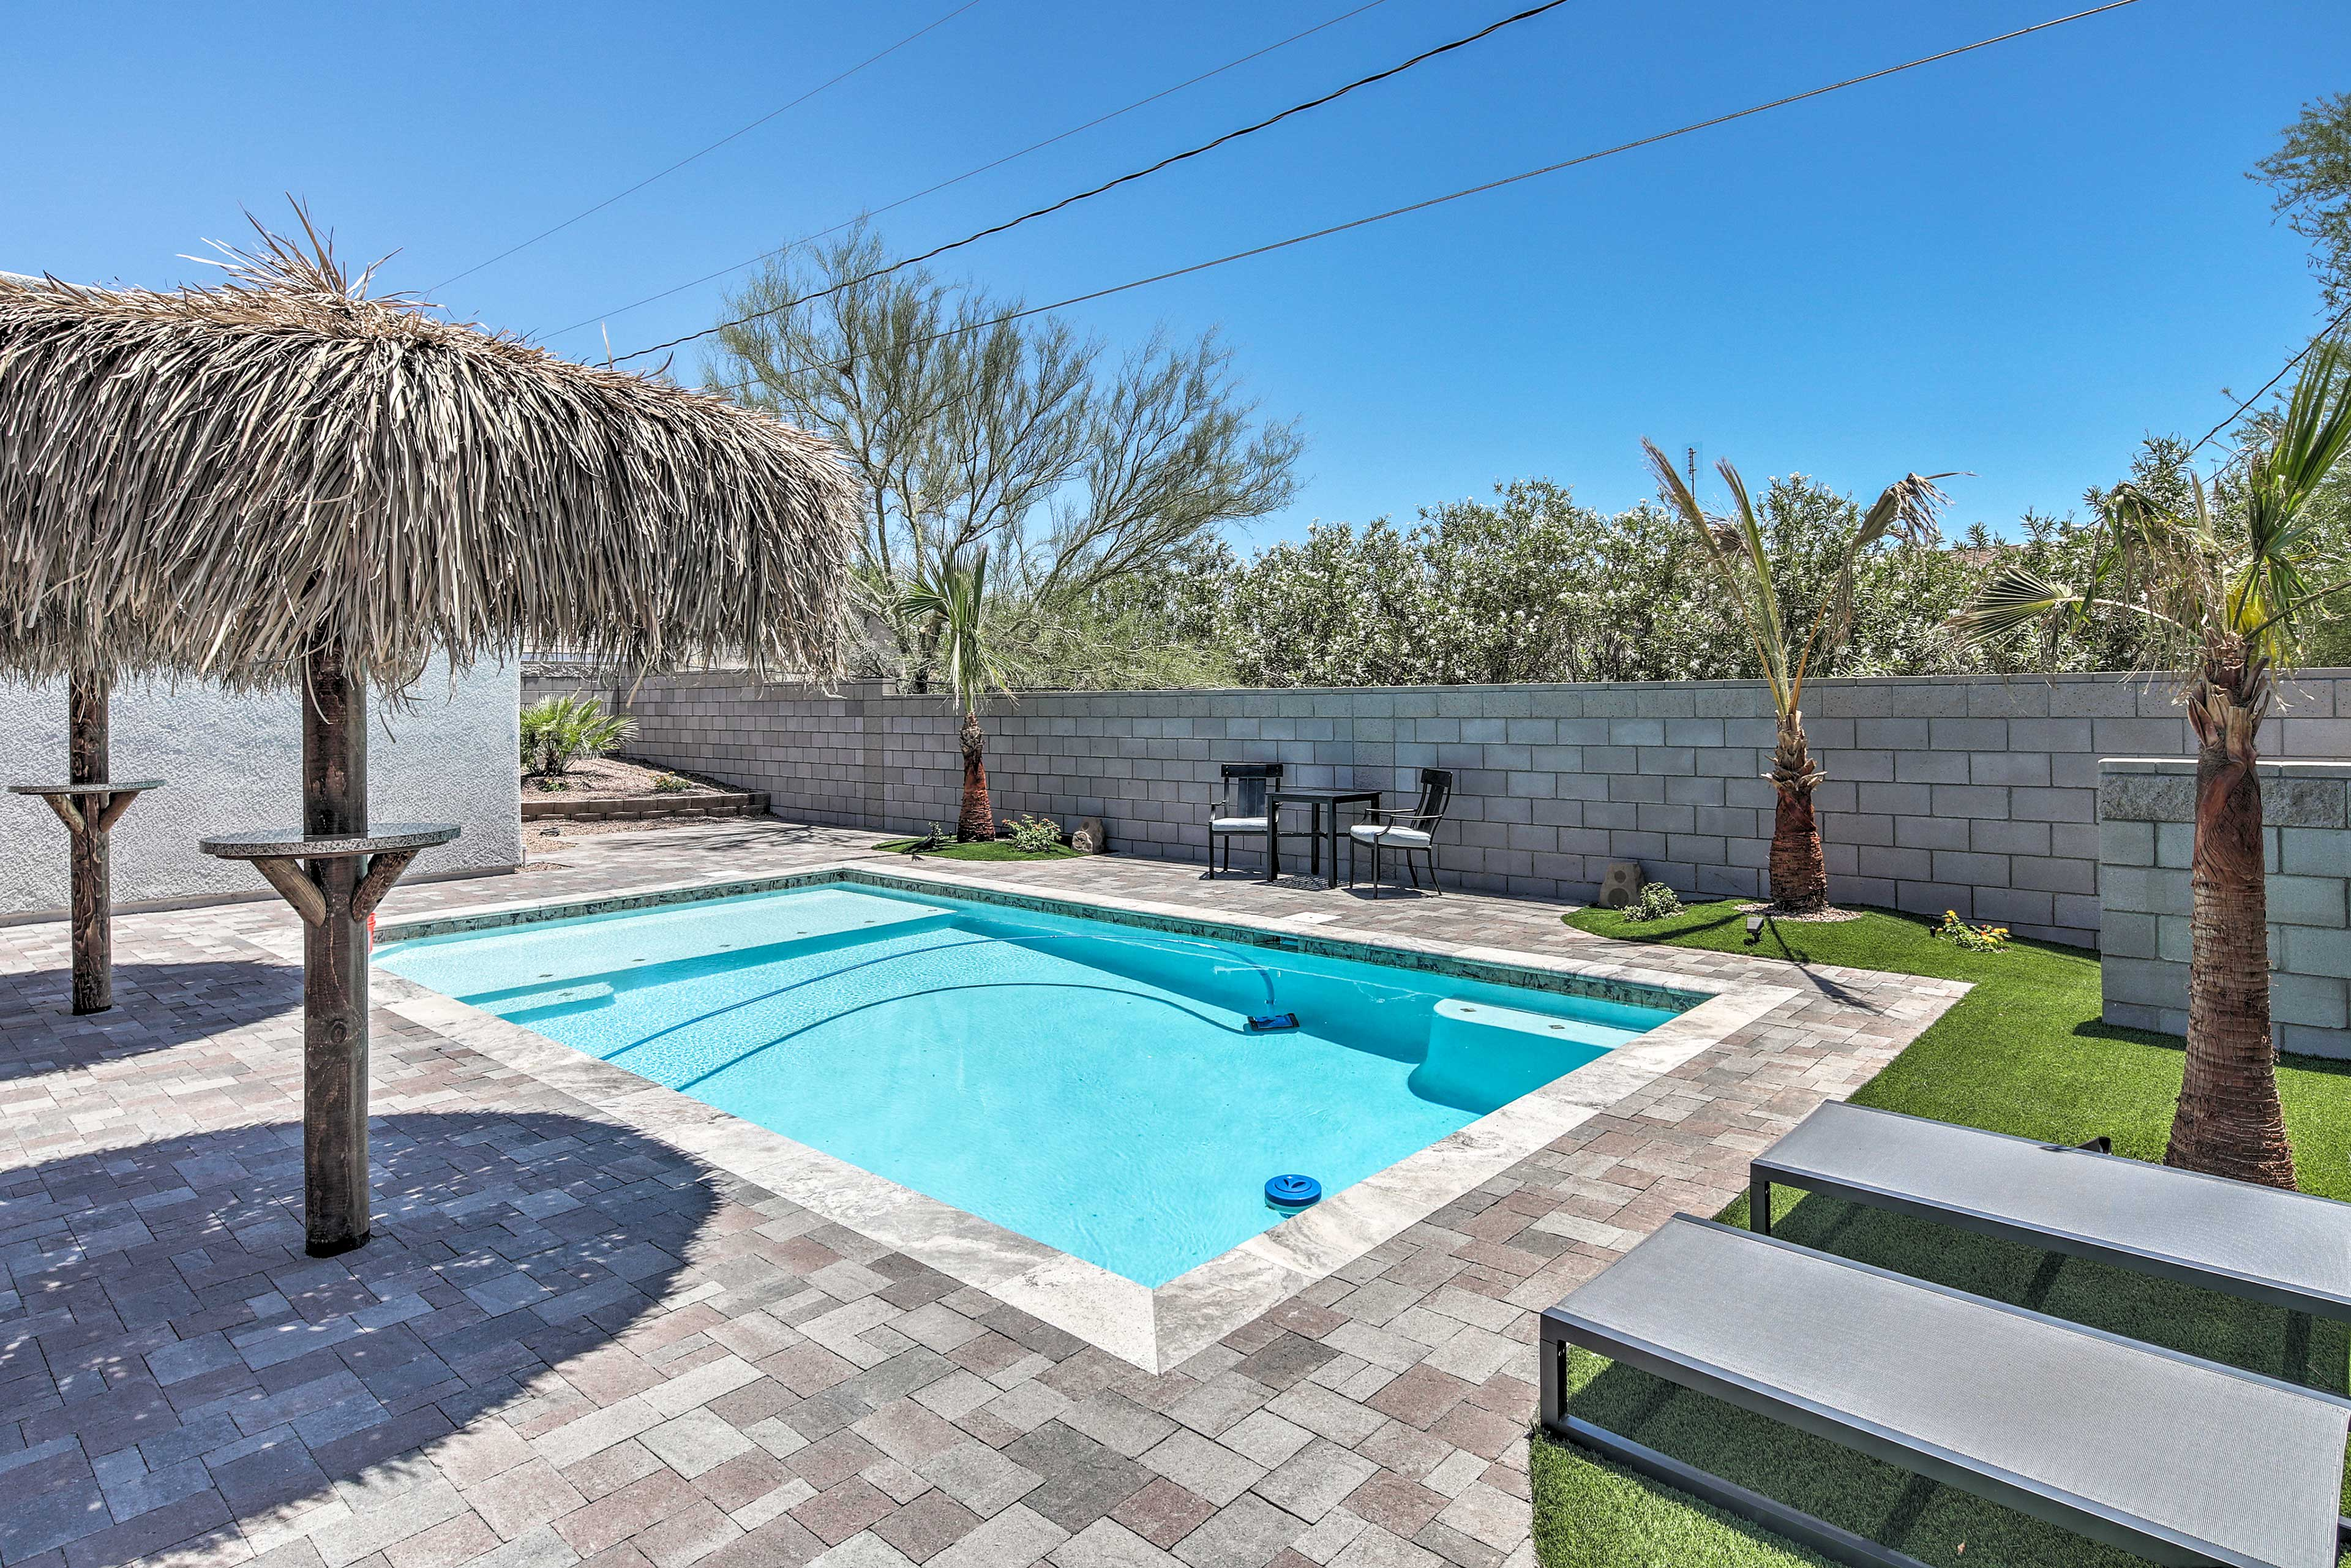 The pool deck is furnished with lounge chairs and a small dining table.